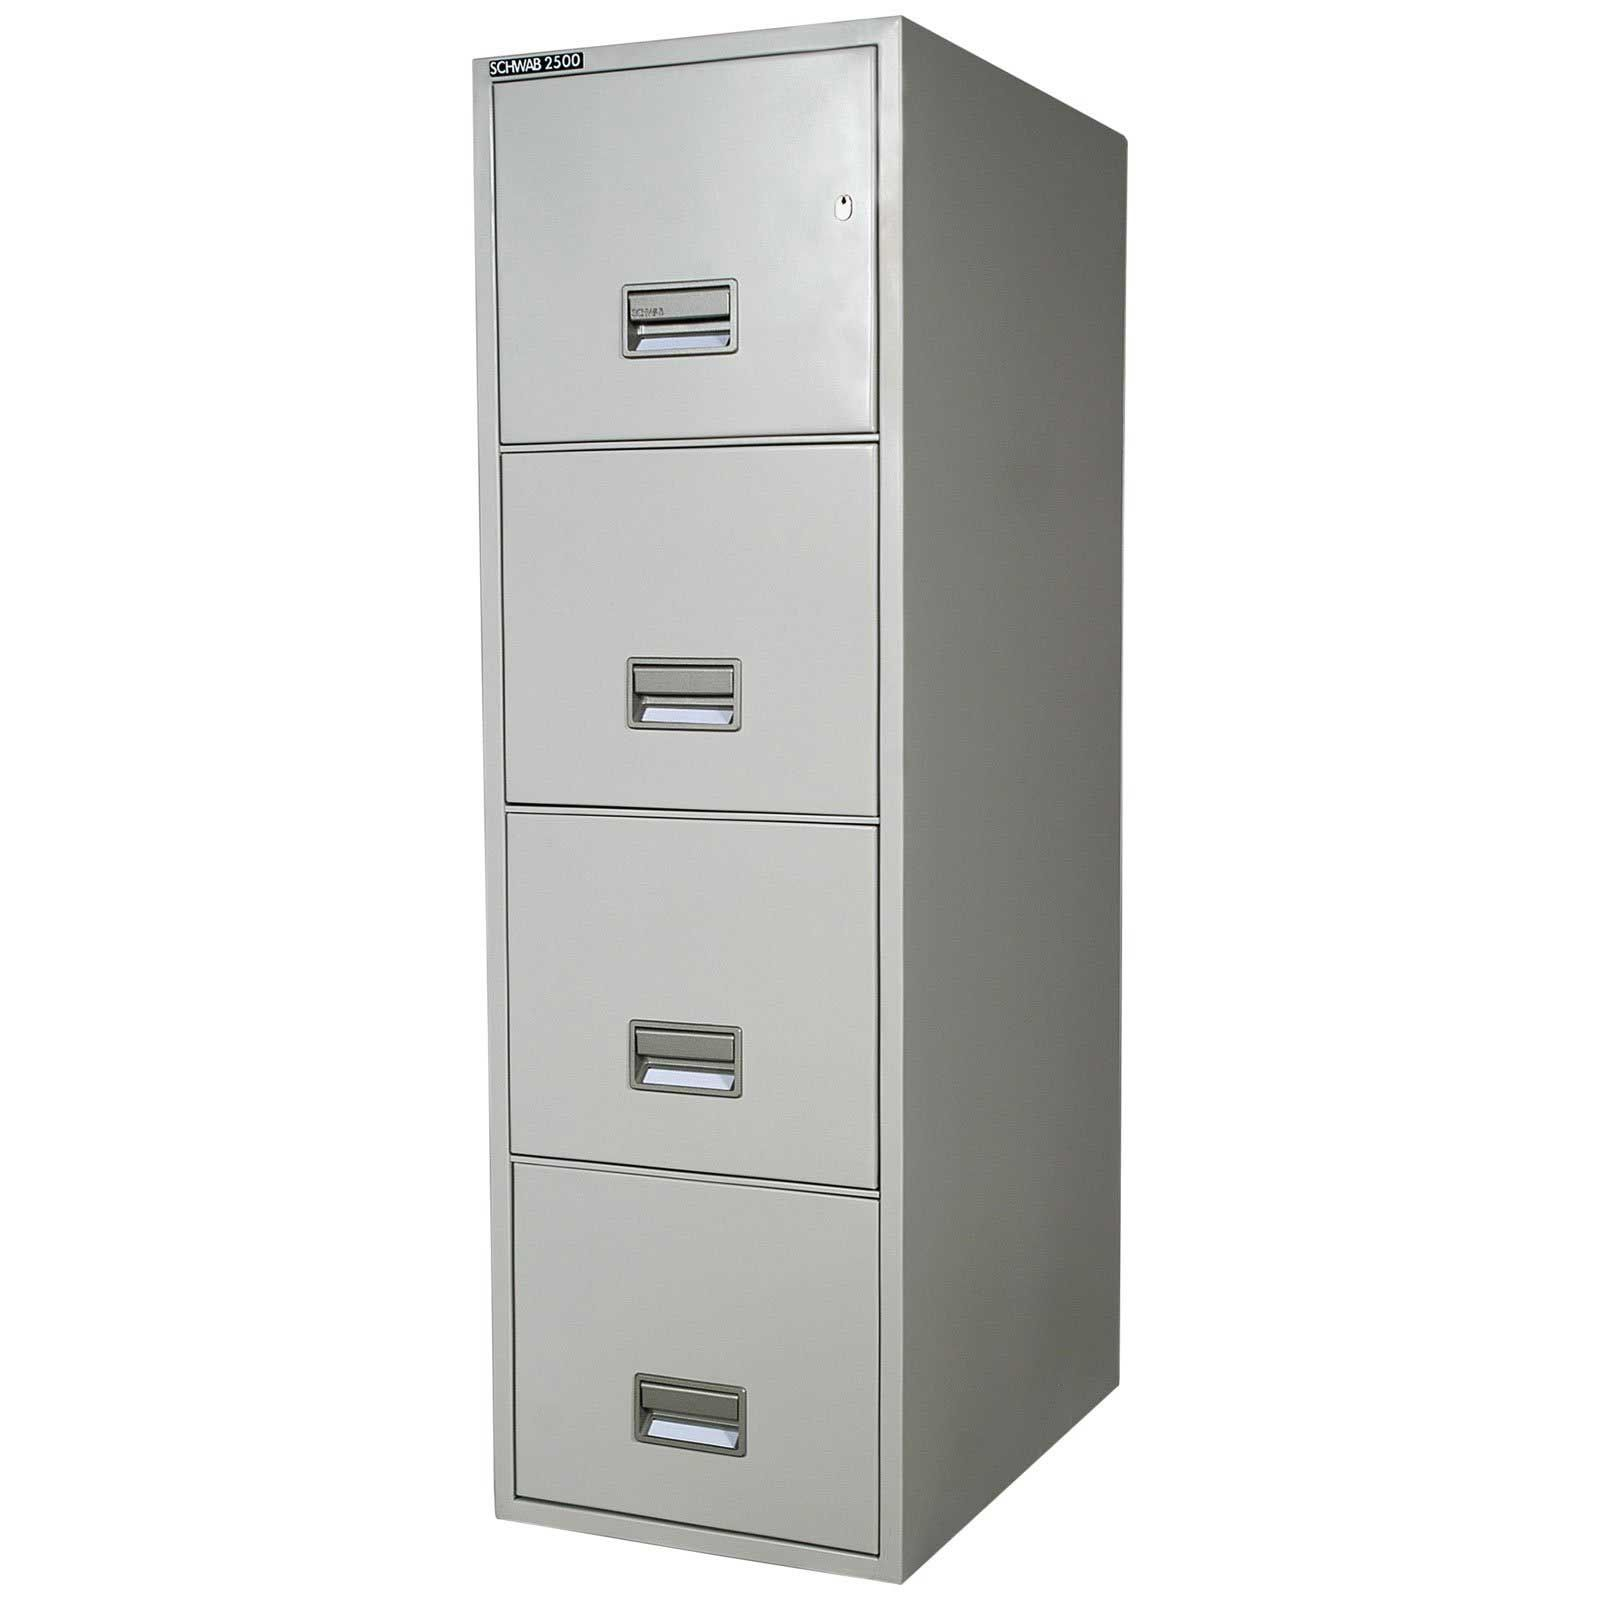 cabinets filing ah maxwell sliding picturesque also file cabinet prev drawer legal chic popular metal